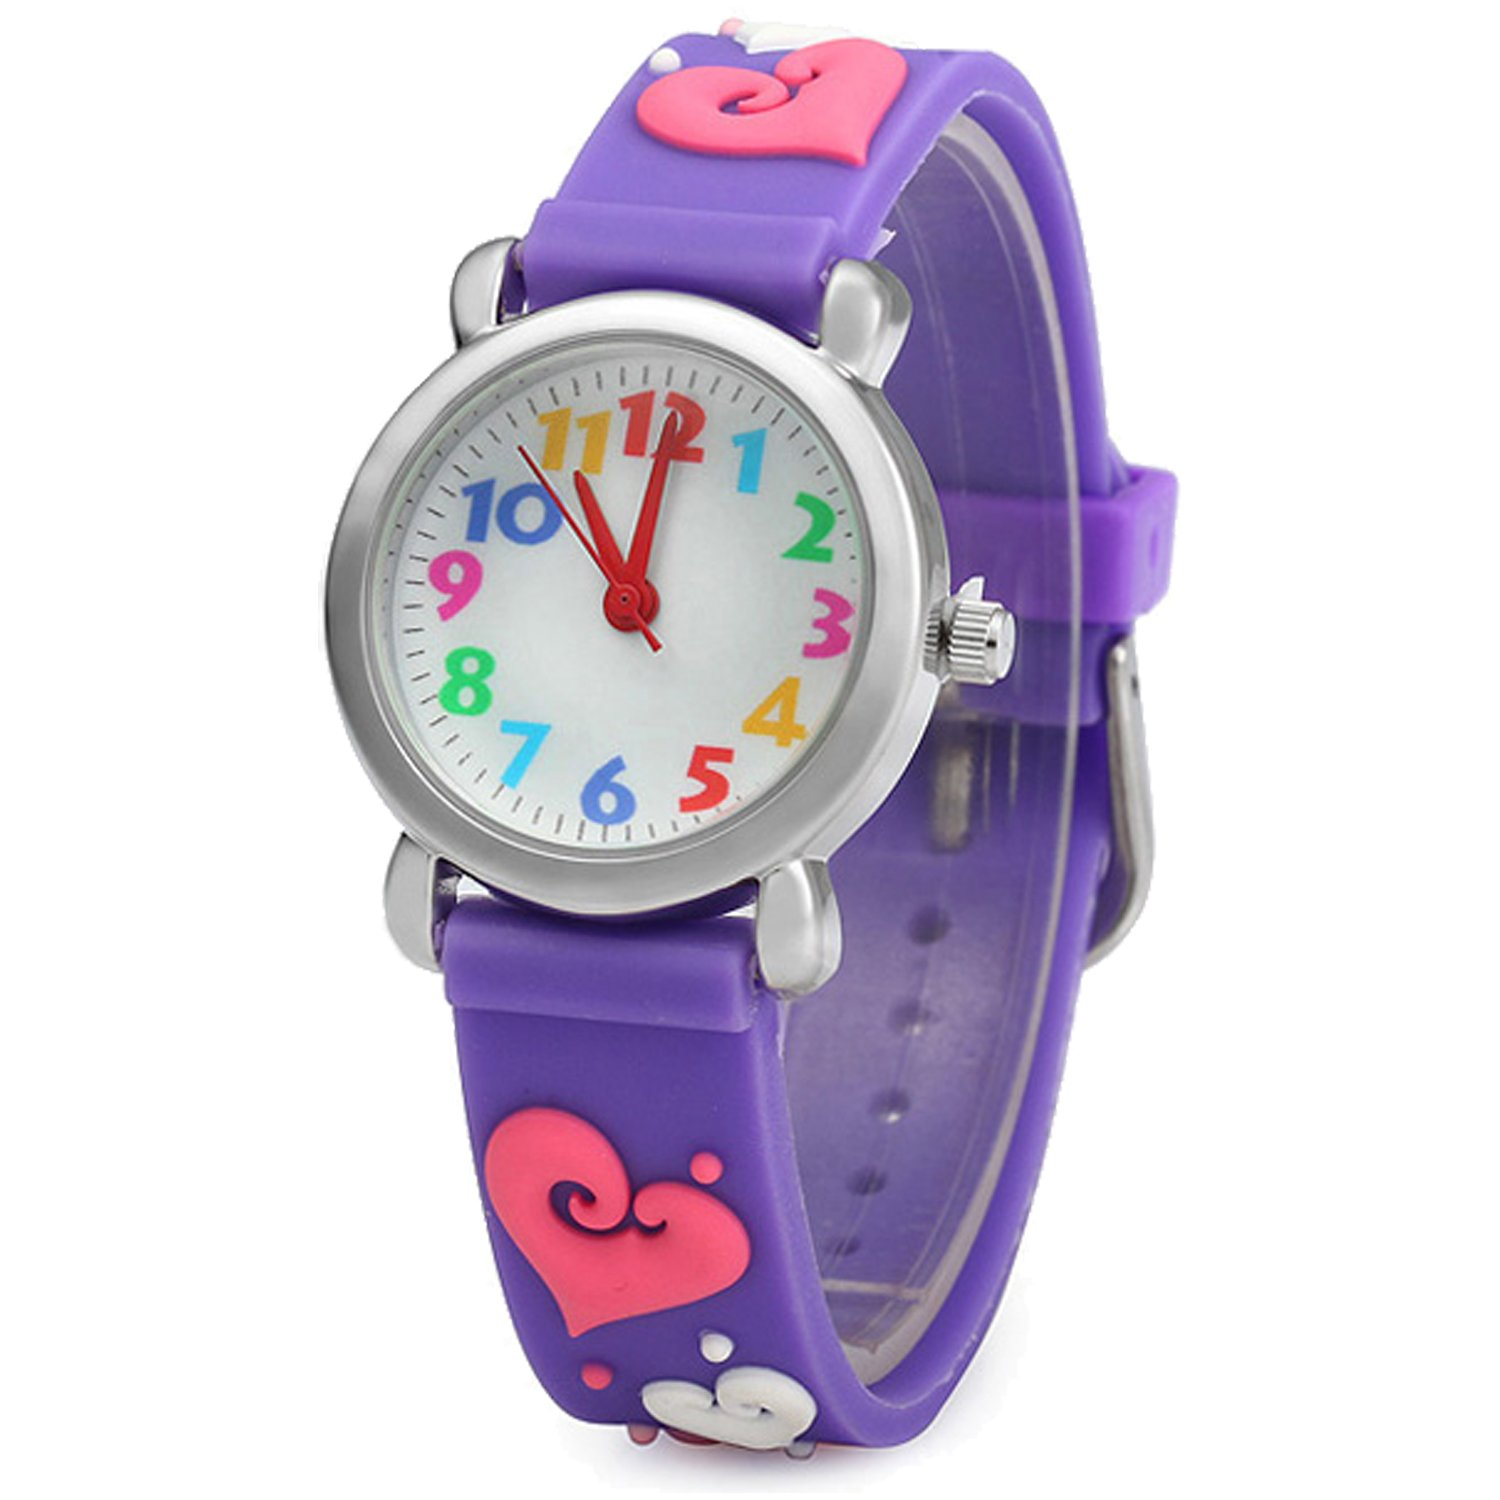 watch waterproof collections brand watches fashion mujer cartoon products black jelly digital white kids skmei relojes children new feminino green rubber wristwatches led popular sports blue strap relogio